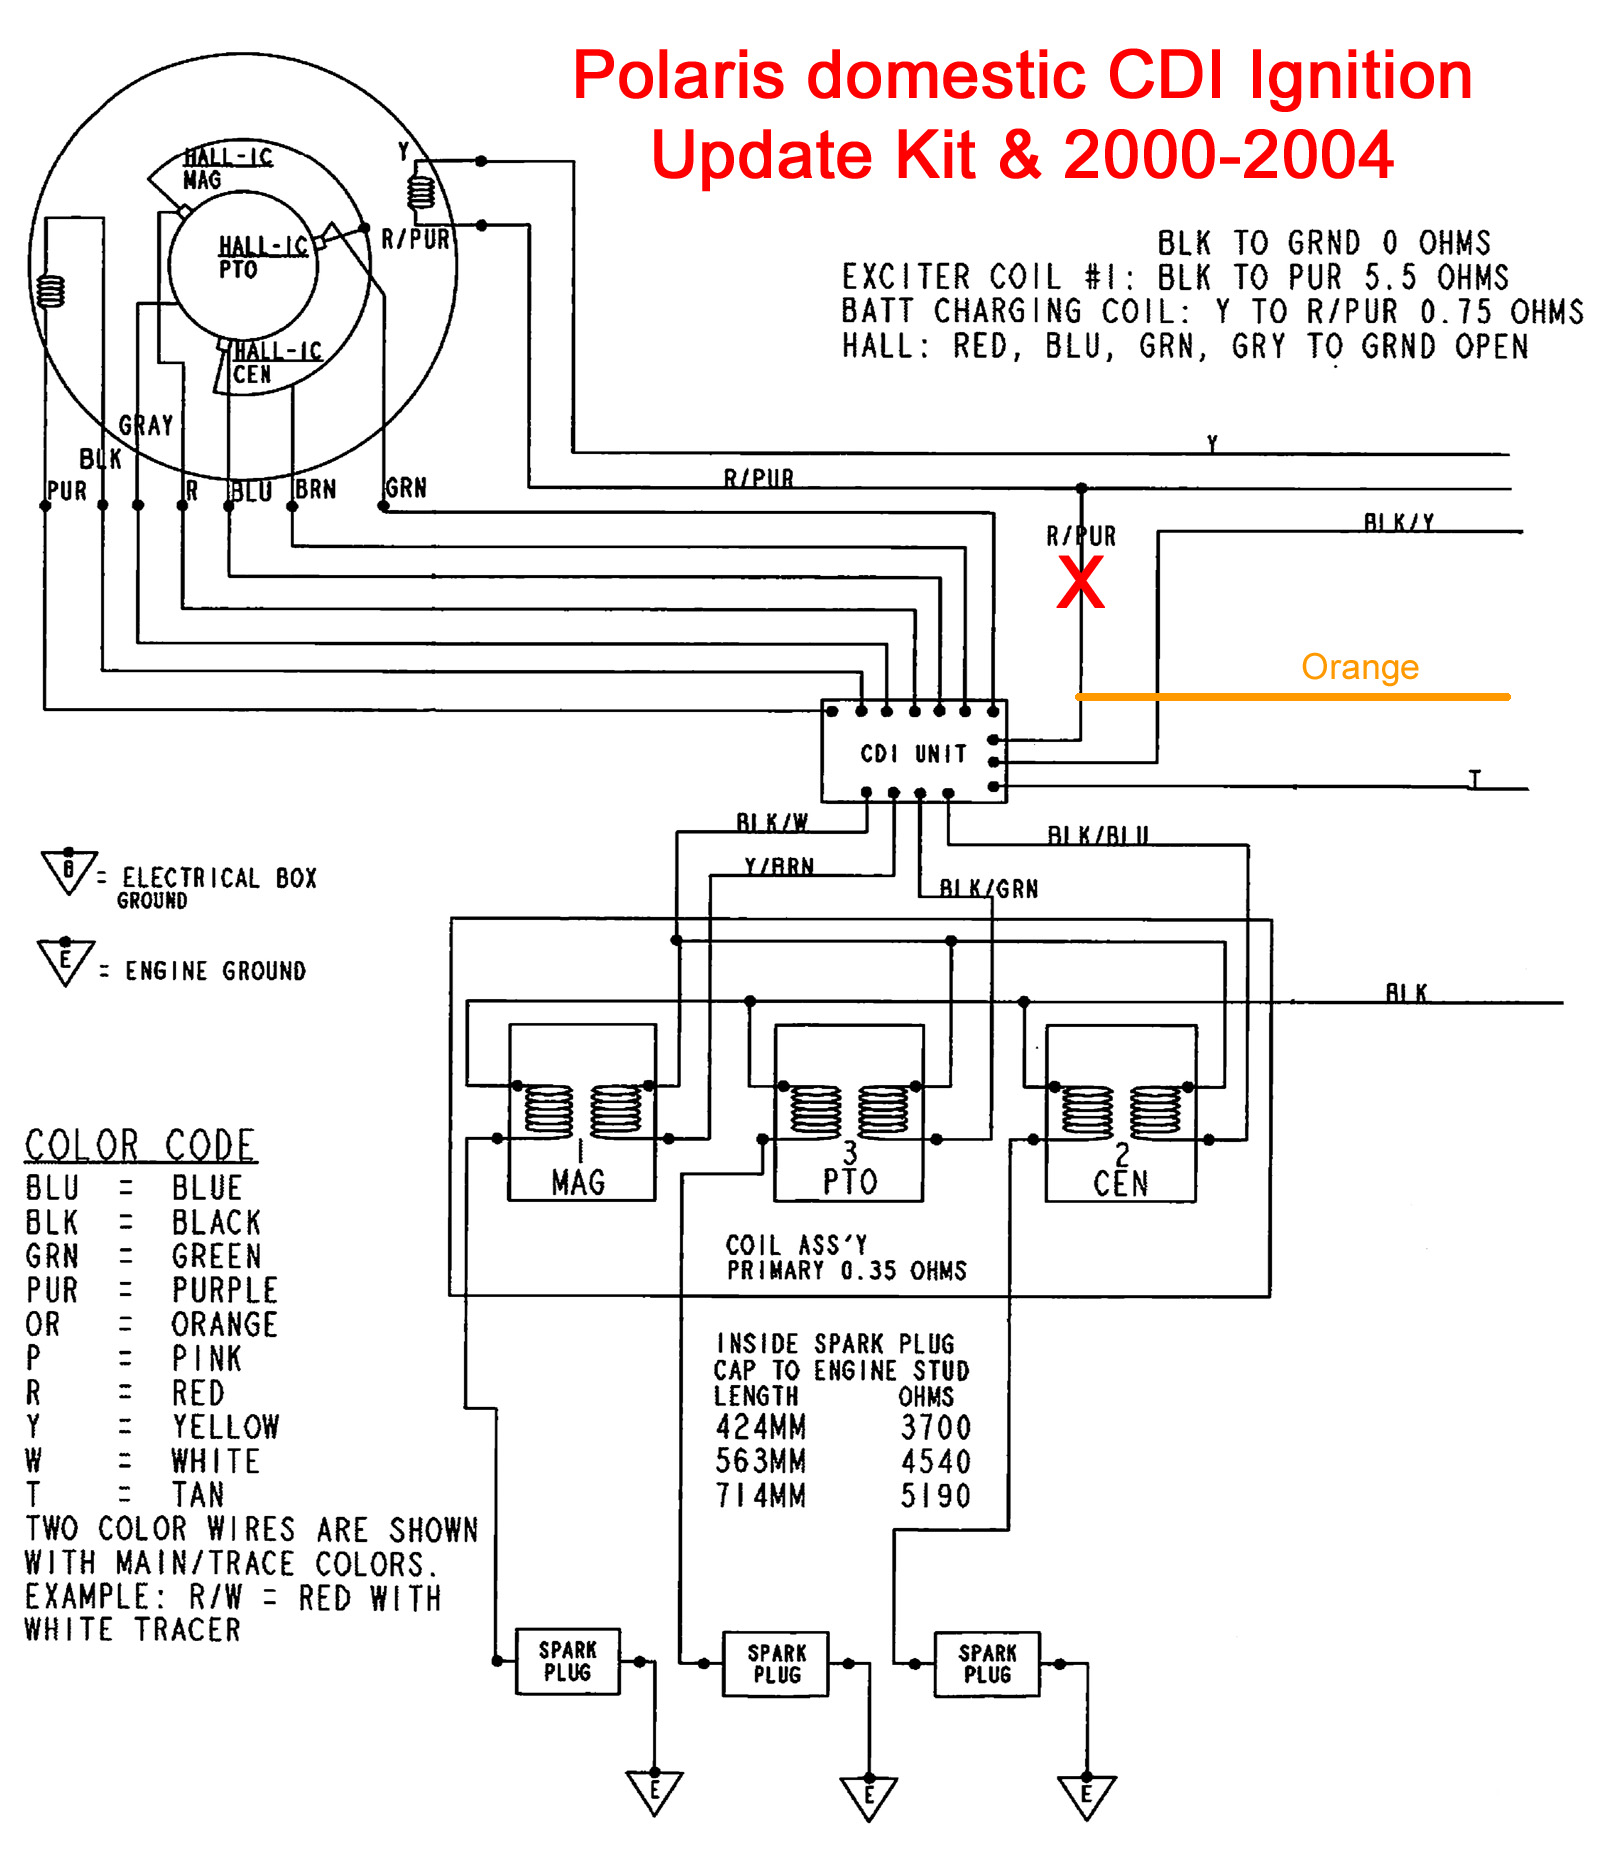 polaris ranger wiring schematic polaris image polaris ranger ignition switch wiring diagram polaris on polaris ranger 800 wiring schematic